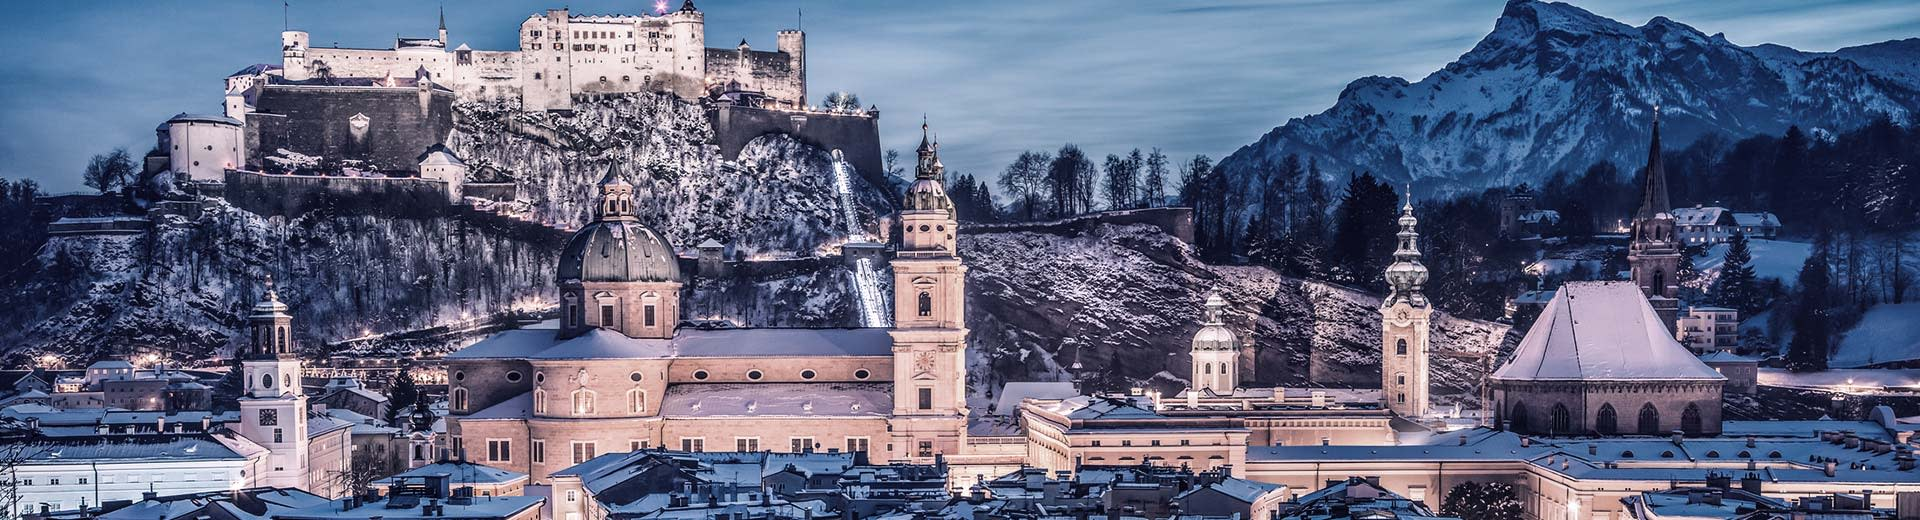 Salzburg Castle lights up the night sky in the background, while historic buildings are visible to the fore